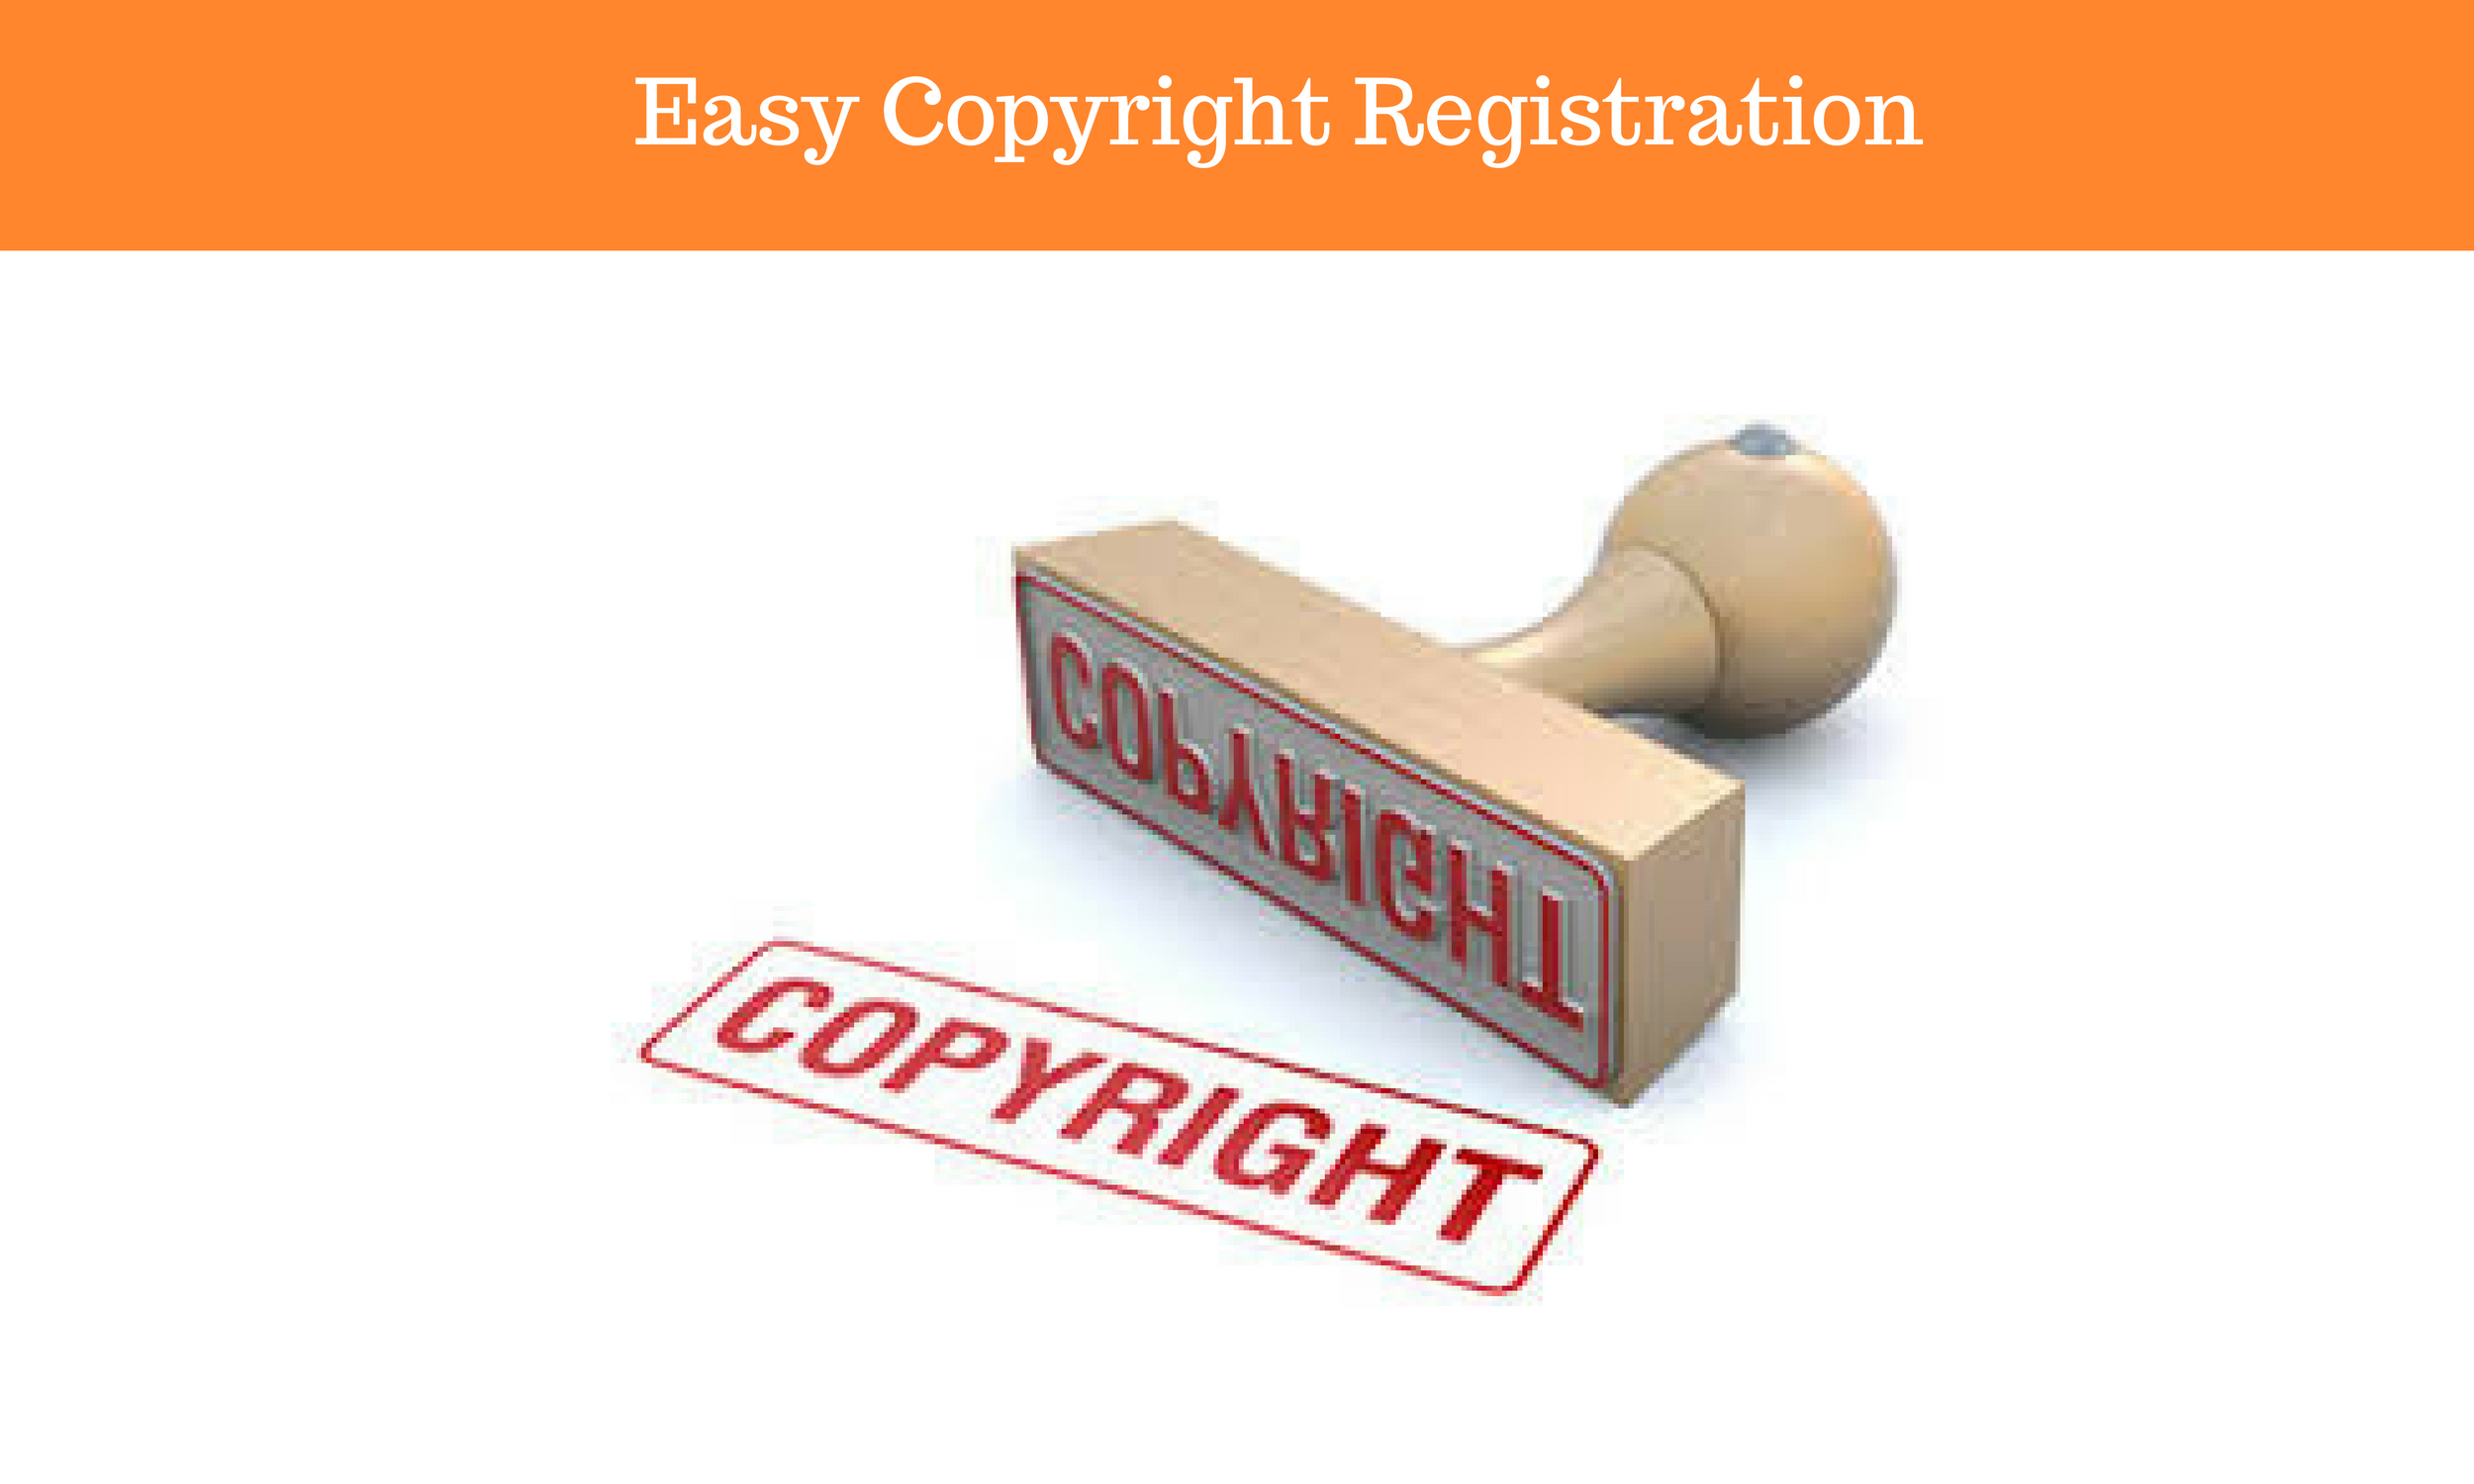 Easy COPYRIGHT Registration